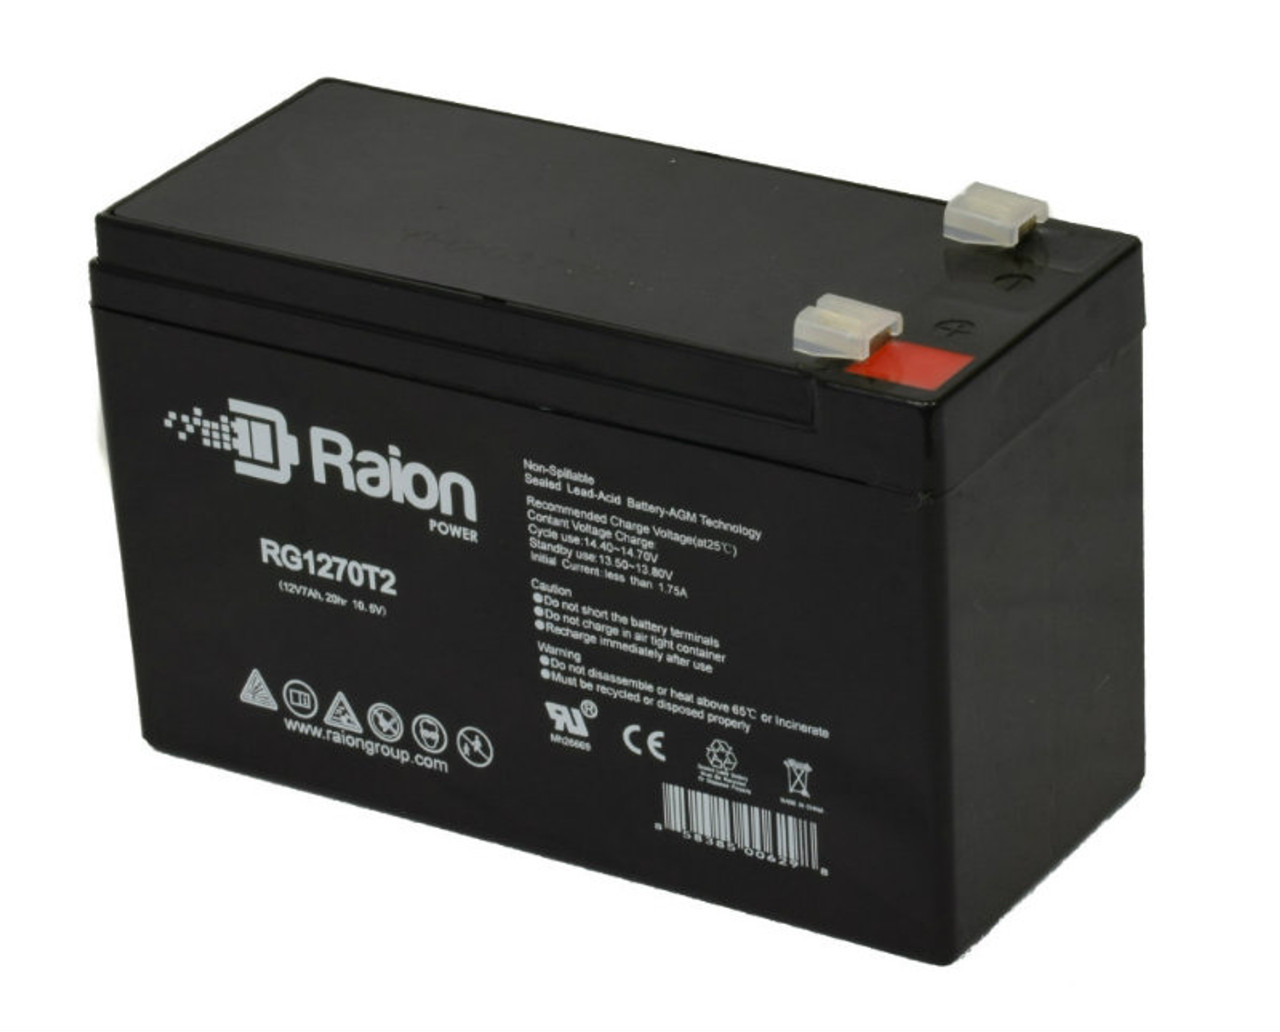 Raion Power RG1270T1 Replacement Battery for Crown Battery 12CE7.5